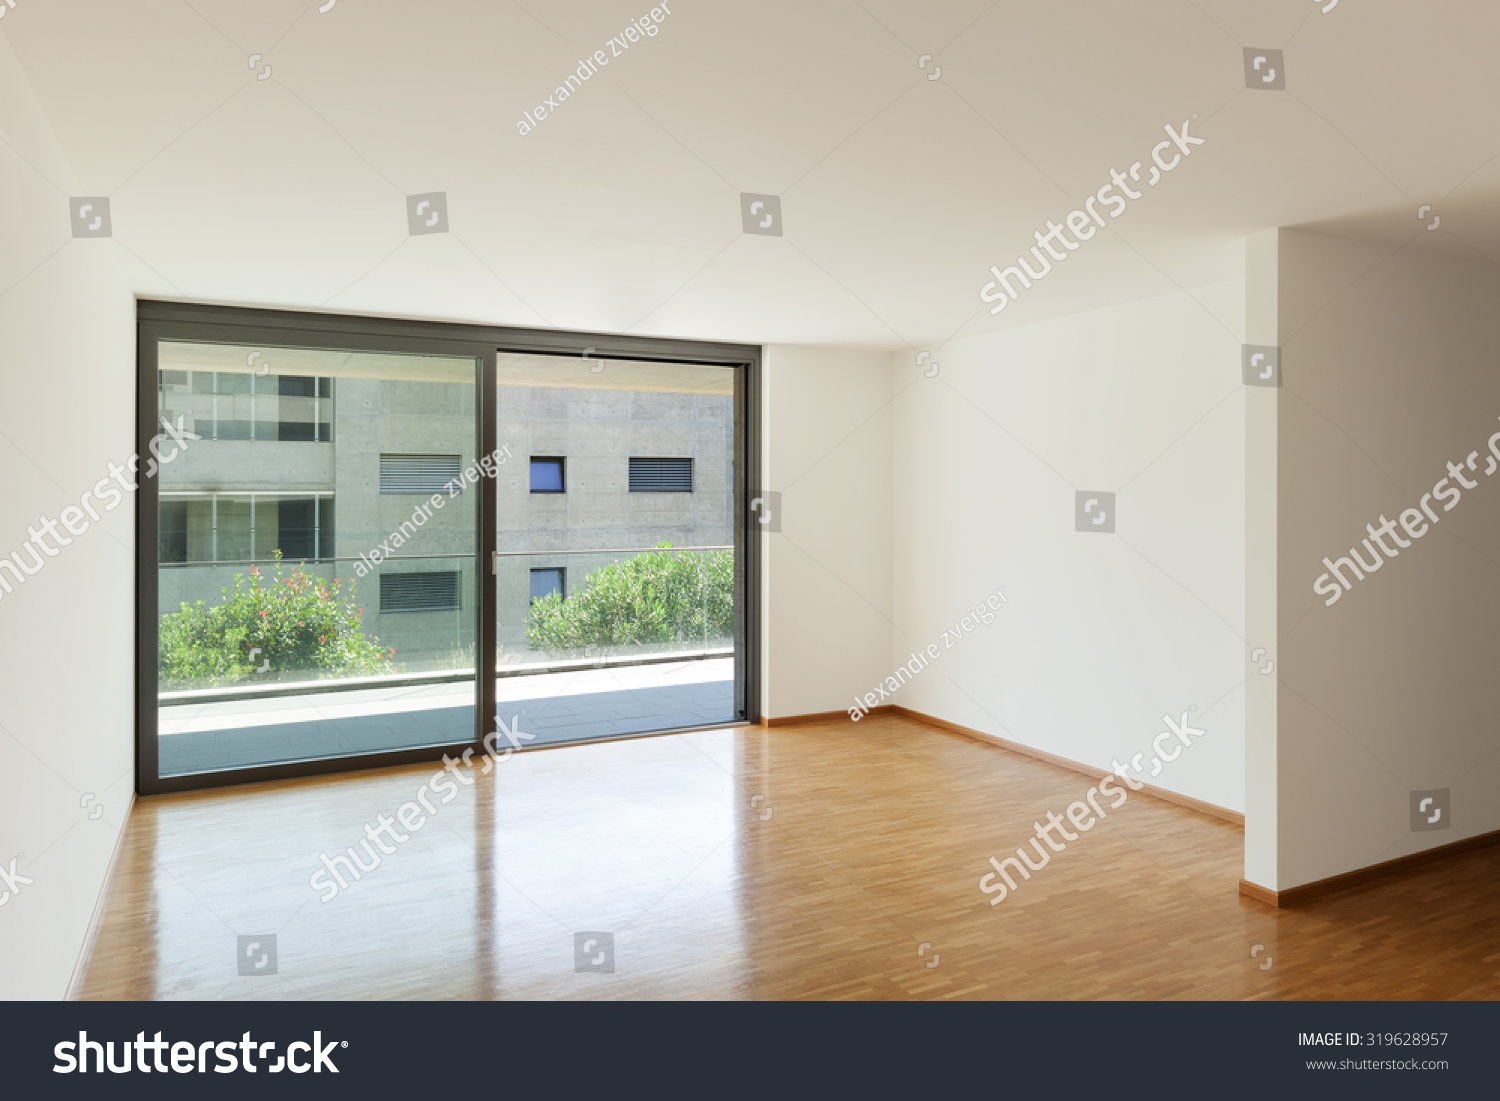 Interior Of An Apartment Empty Living Room With Balcony Parquet Floor